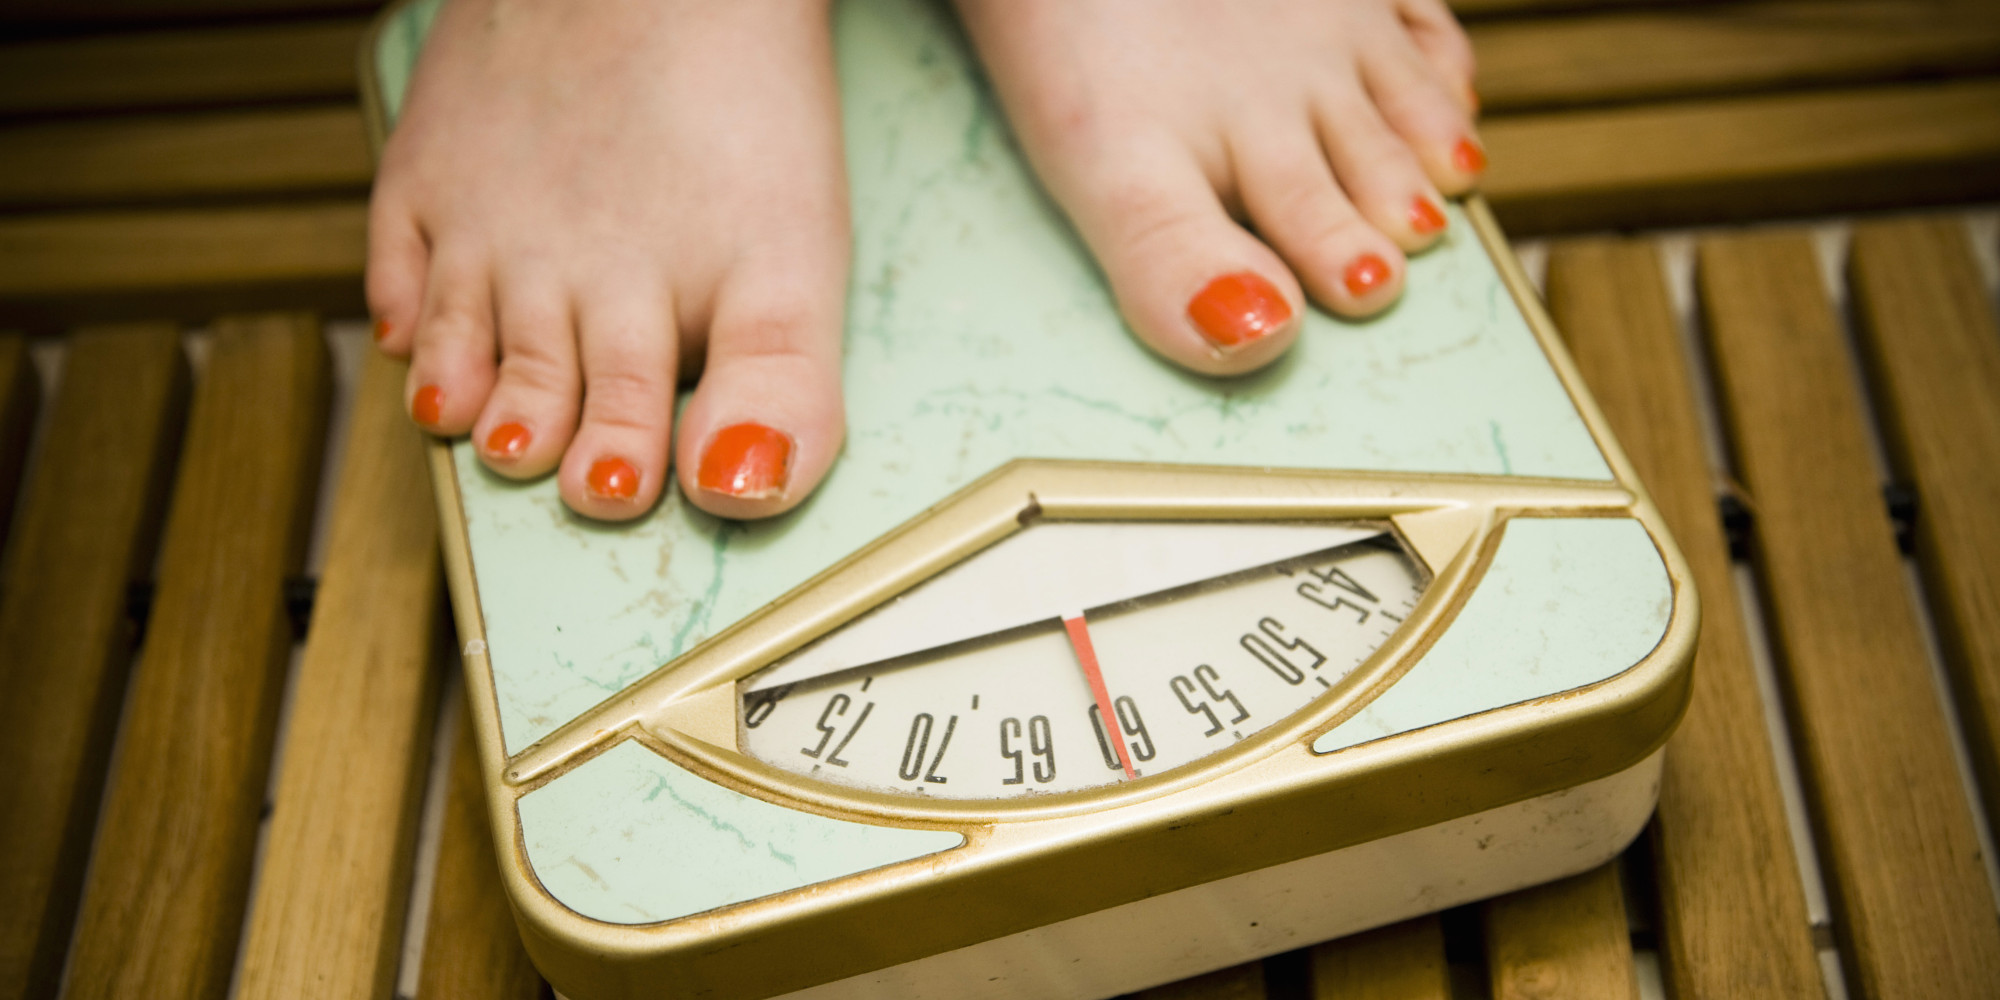 6 Myths About Eating Disorders